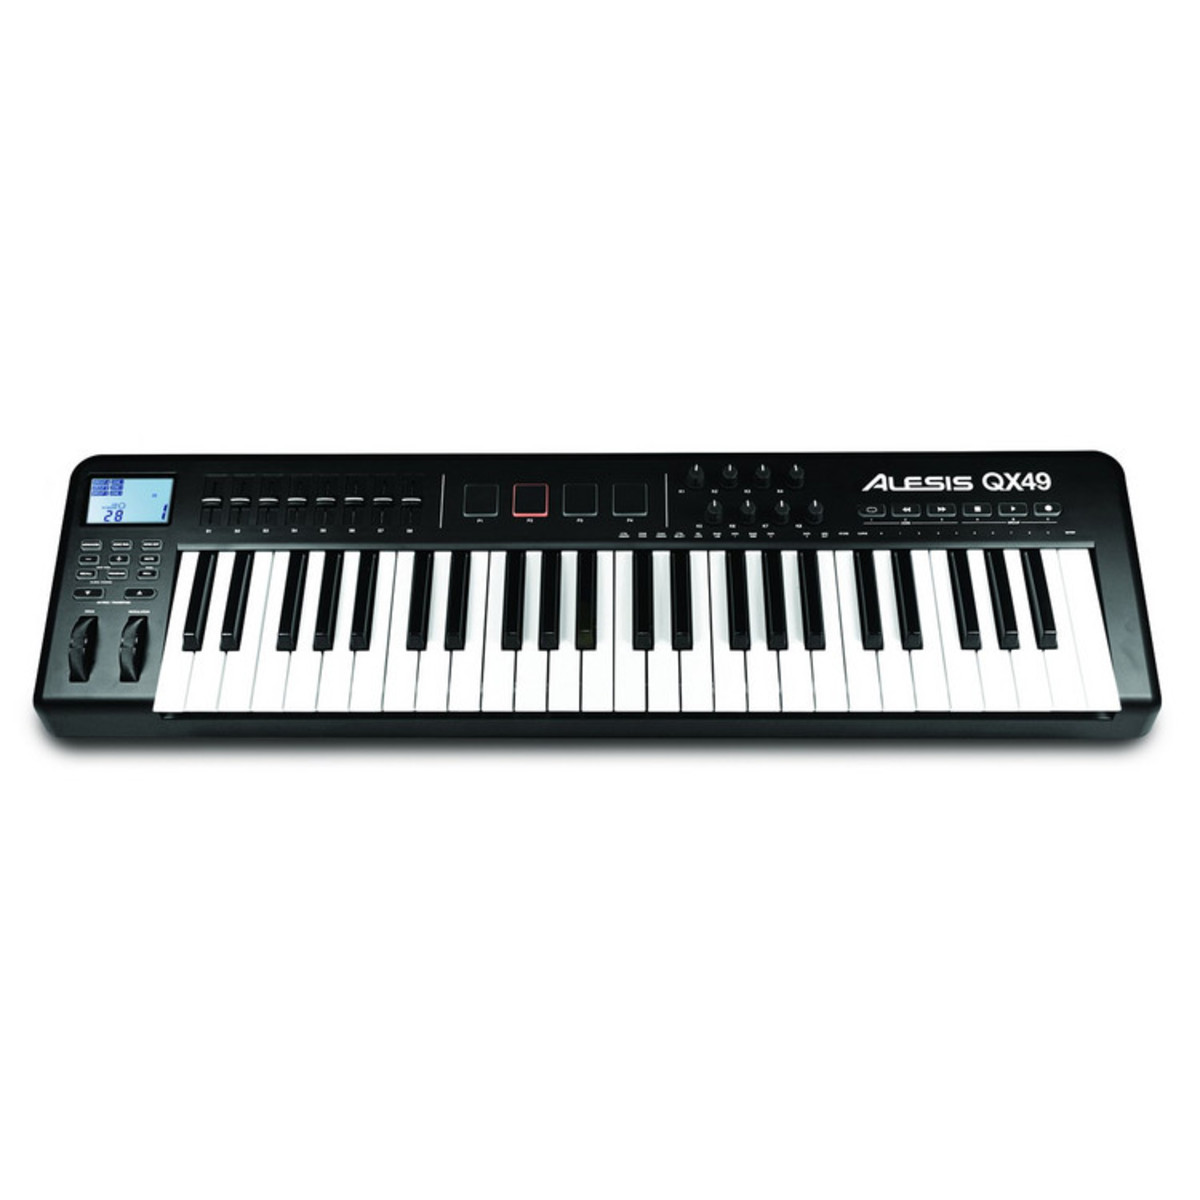 alesis qx49 clavier maitre usb midi. Black Bedroom Furniture Sets. Home Design Ideas